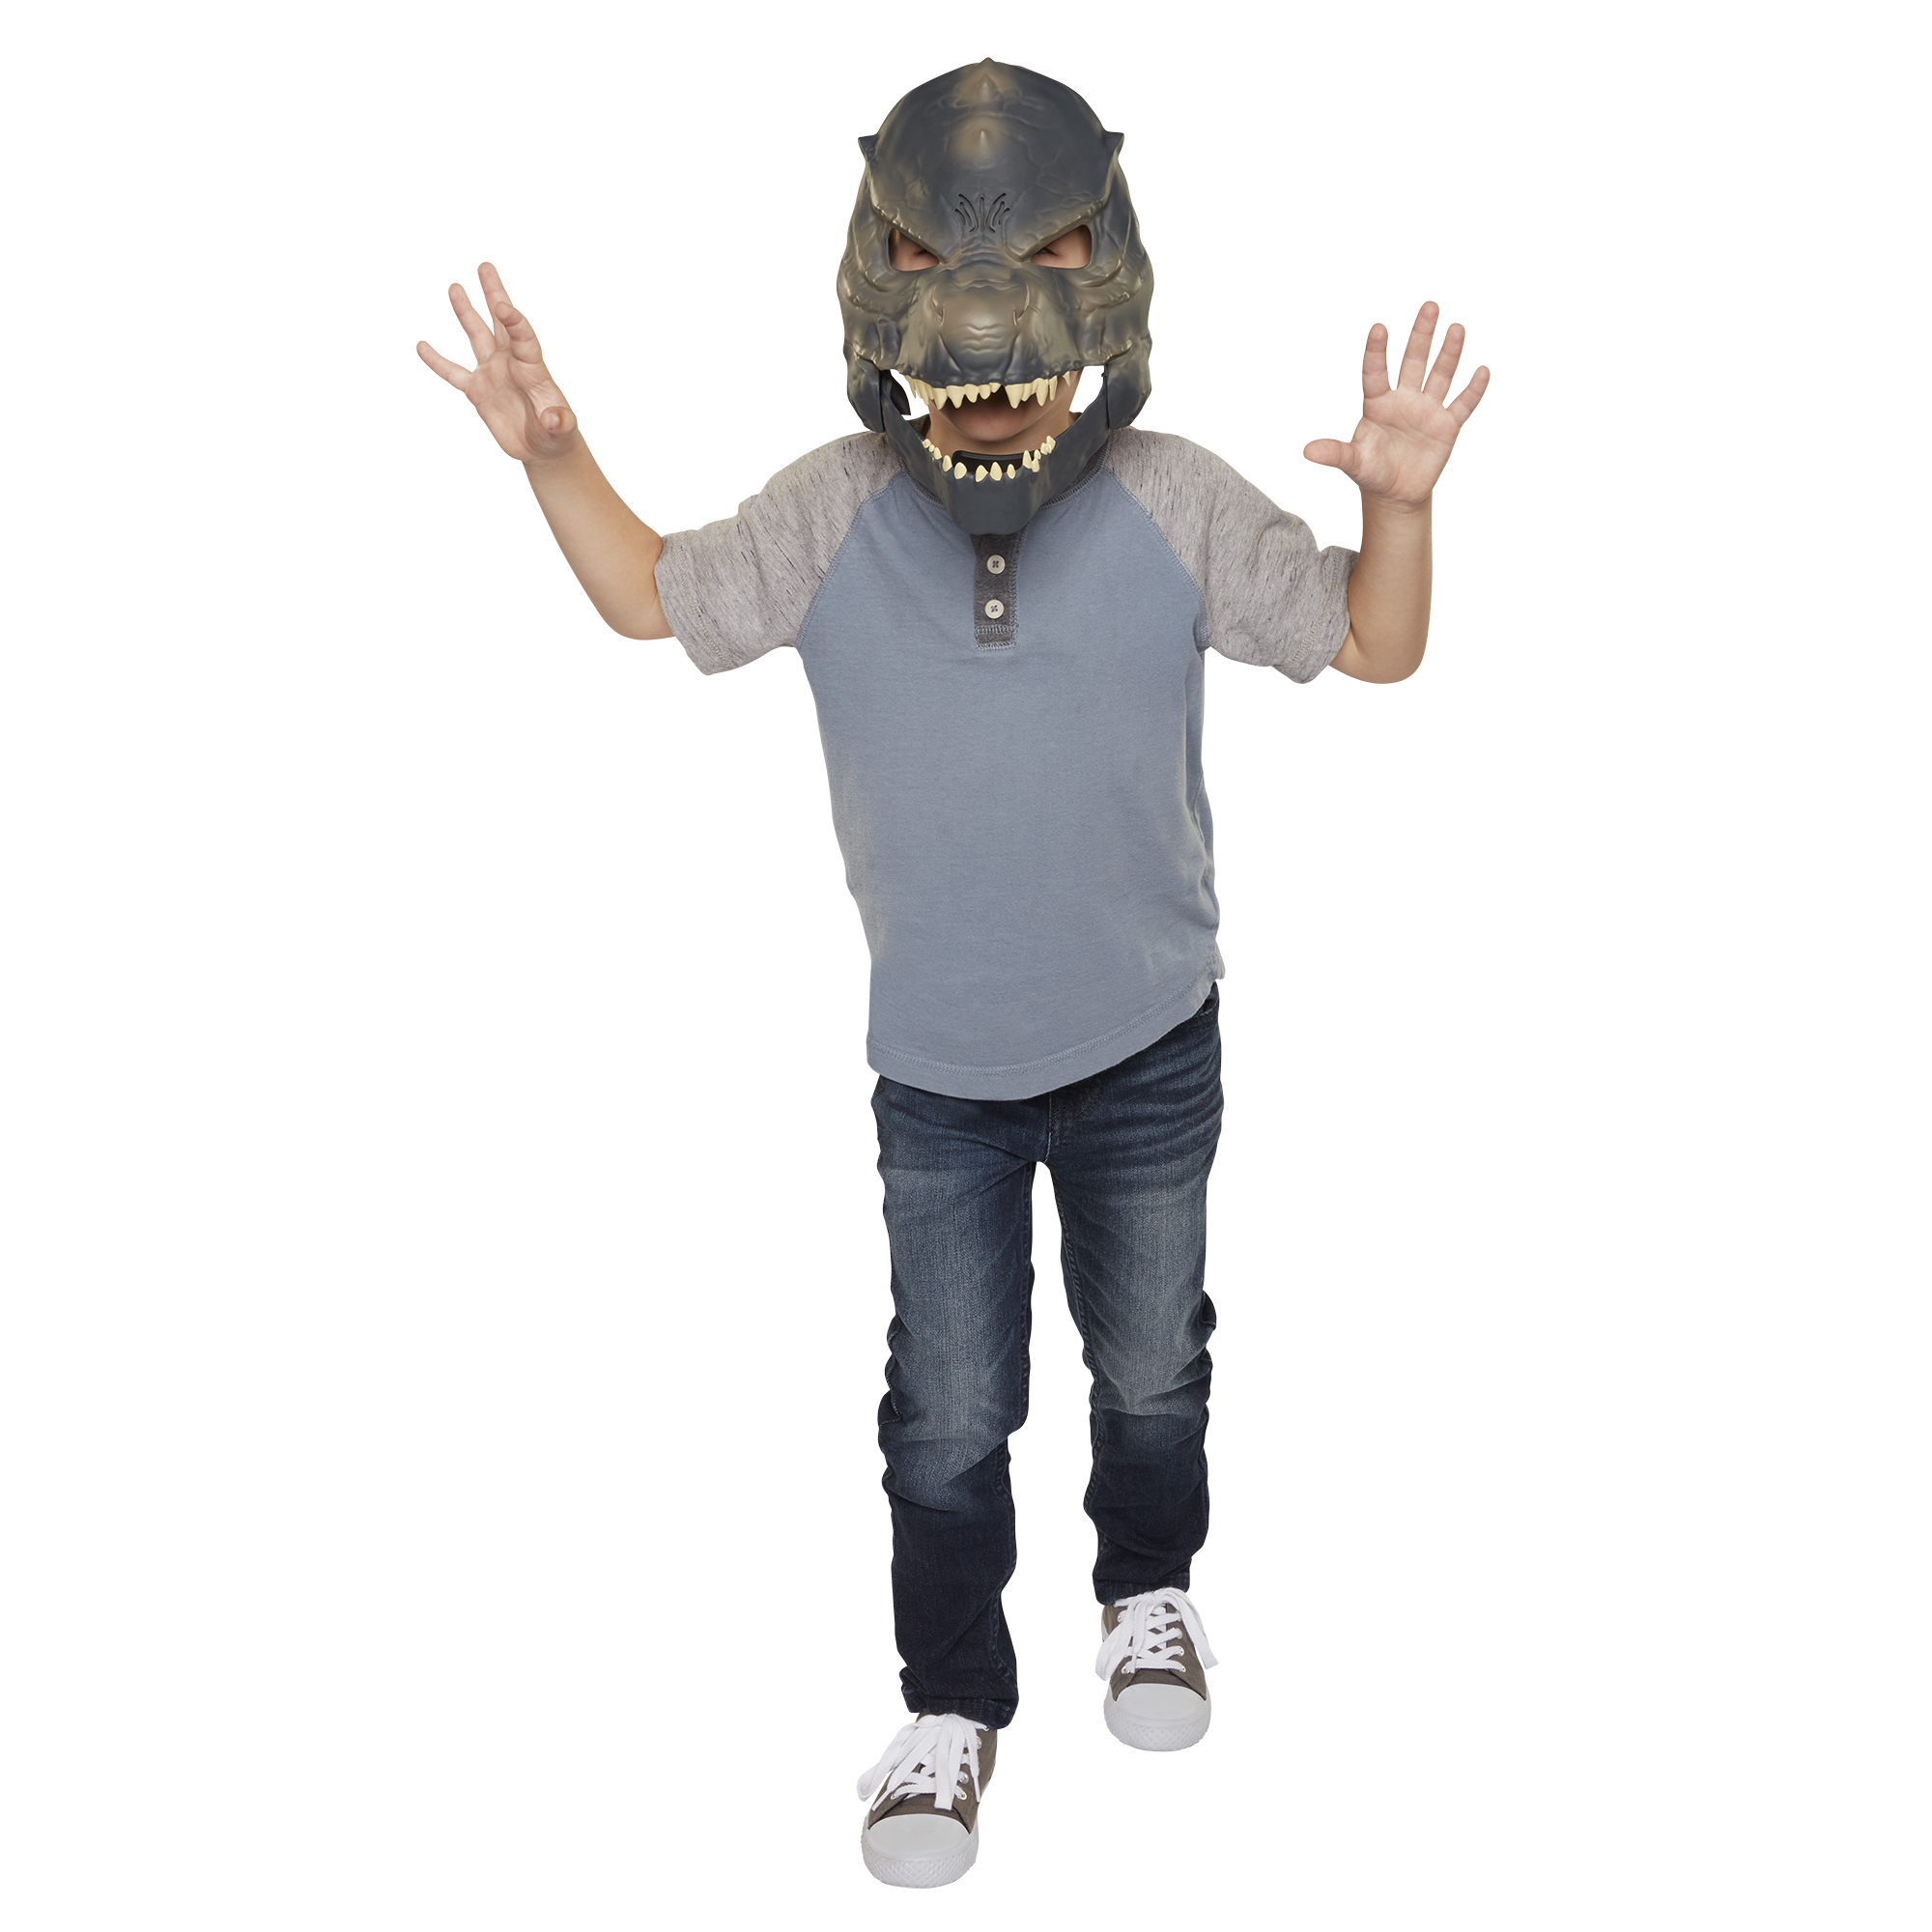 Godzilla: King of the Monsters Roleplay SFX Godzilla Mask